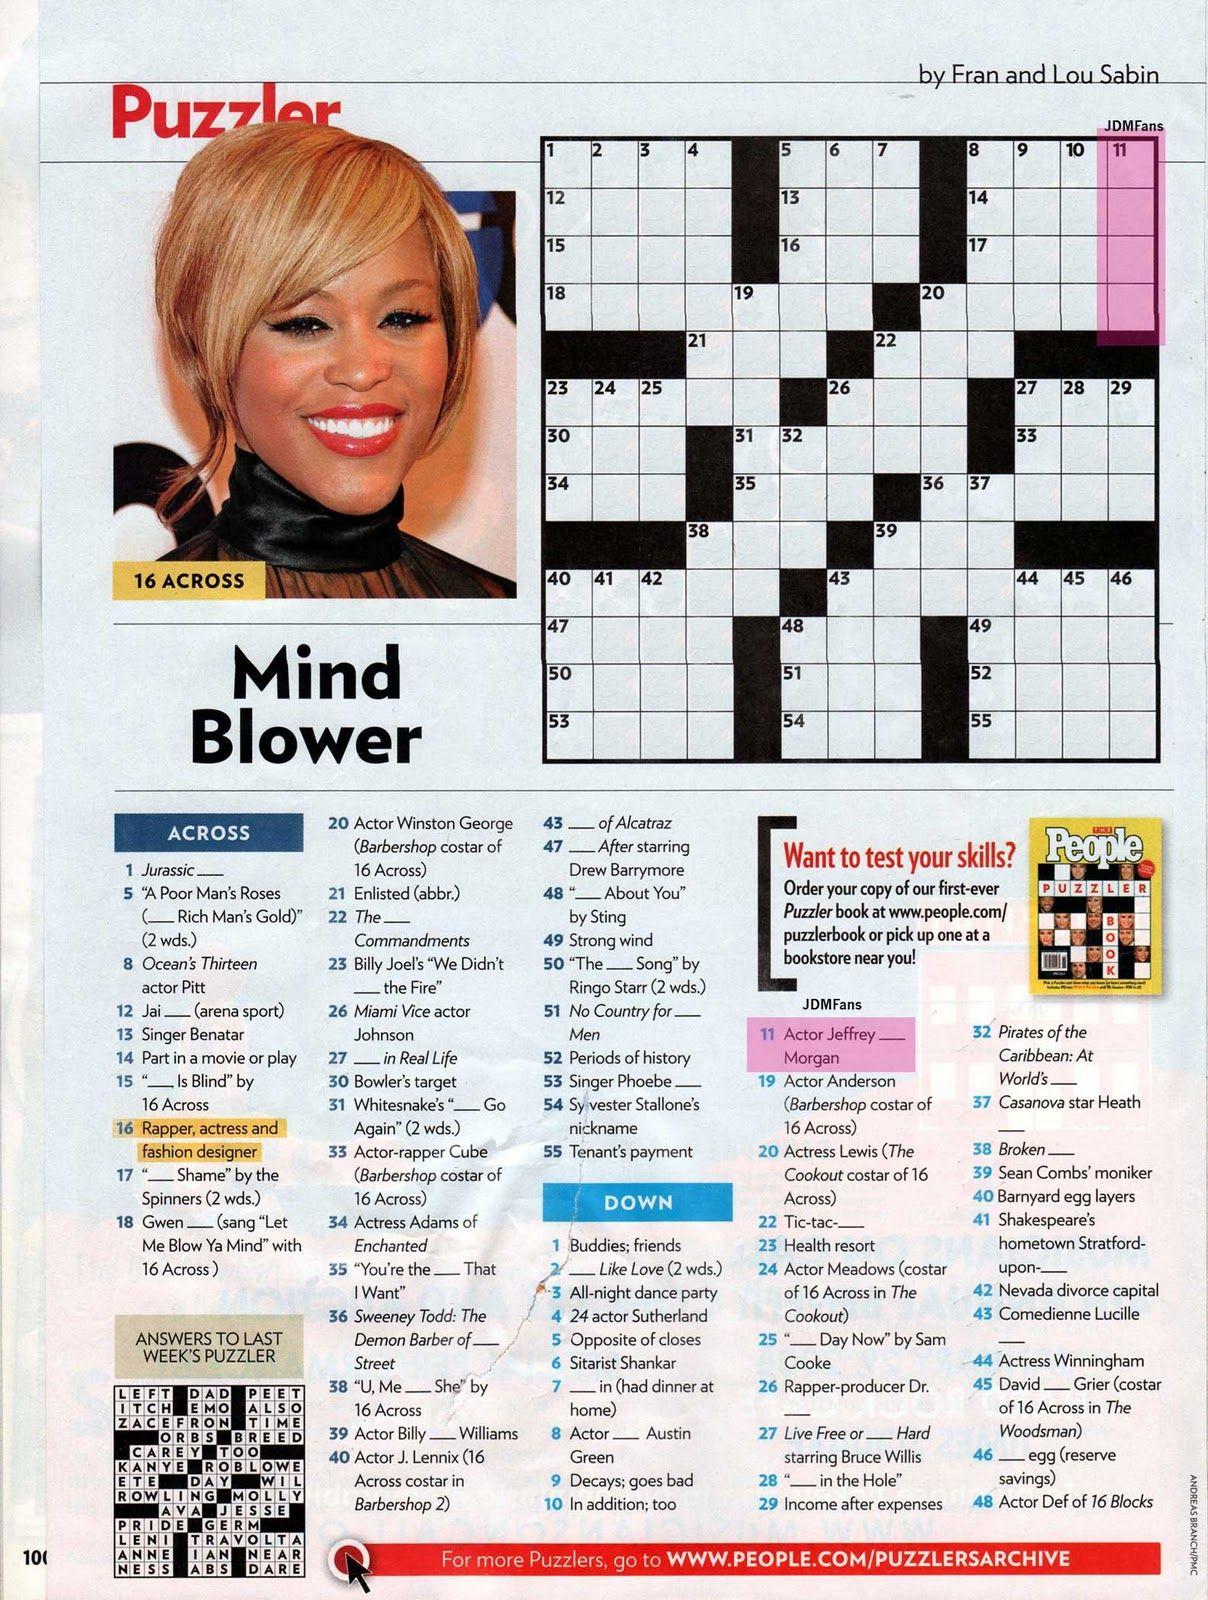 People Magazine Crossword Puzzles To Print | Puzzles In 2019 - Printable People Crossword Puzzles